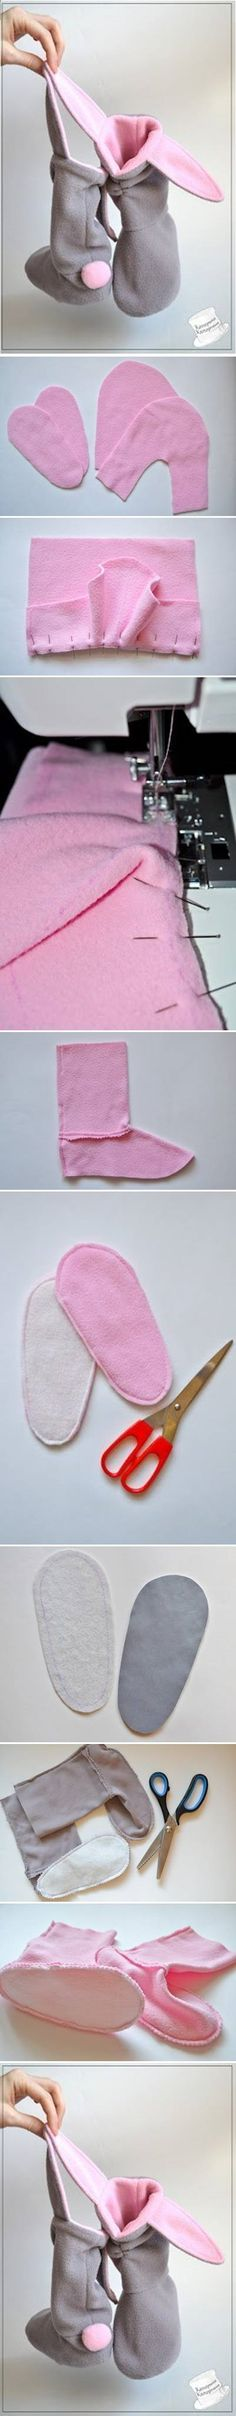 DIY Cute Bunny Slippers - very cute but terrible instructions. I want some Bunny Slippers! Fabric Crafts, Sewing Crafts, Sewing Projects, Diy Projects, Sewing For Kids, Baby Sewing, Free Sewing, Diy Clothing, Sewing Clothes